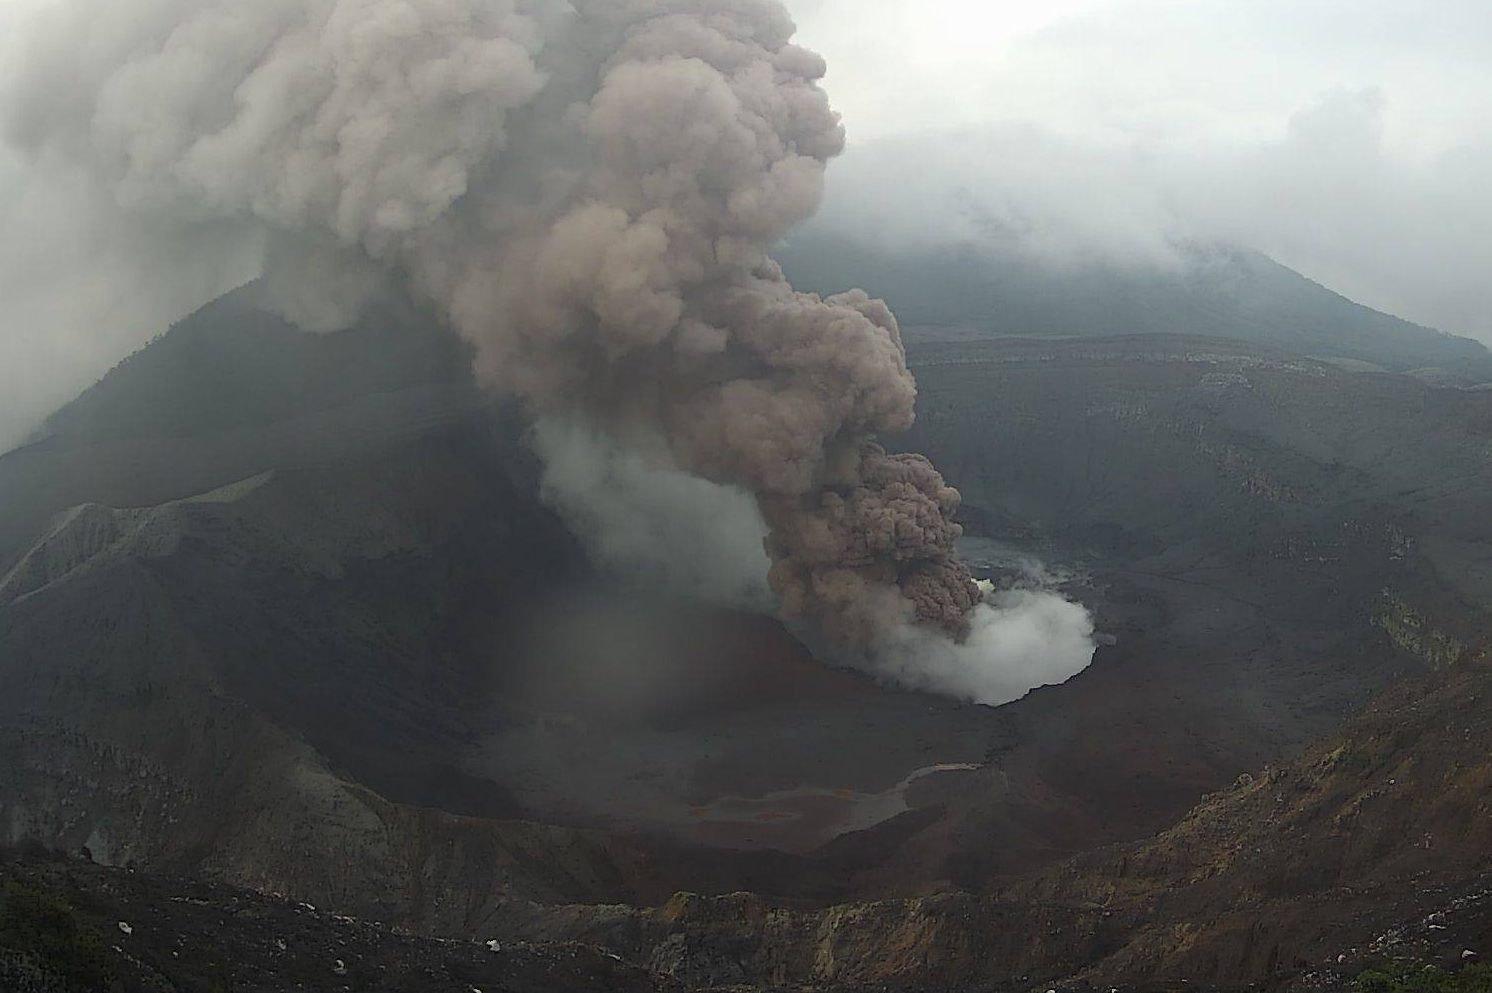 Poas Volcano In Costa Rica Was Very Active This Friday This Time The Eruption Included Ash Costa Rica Star News